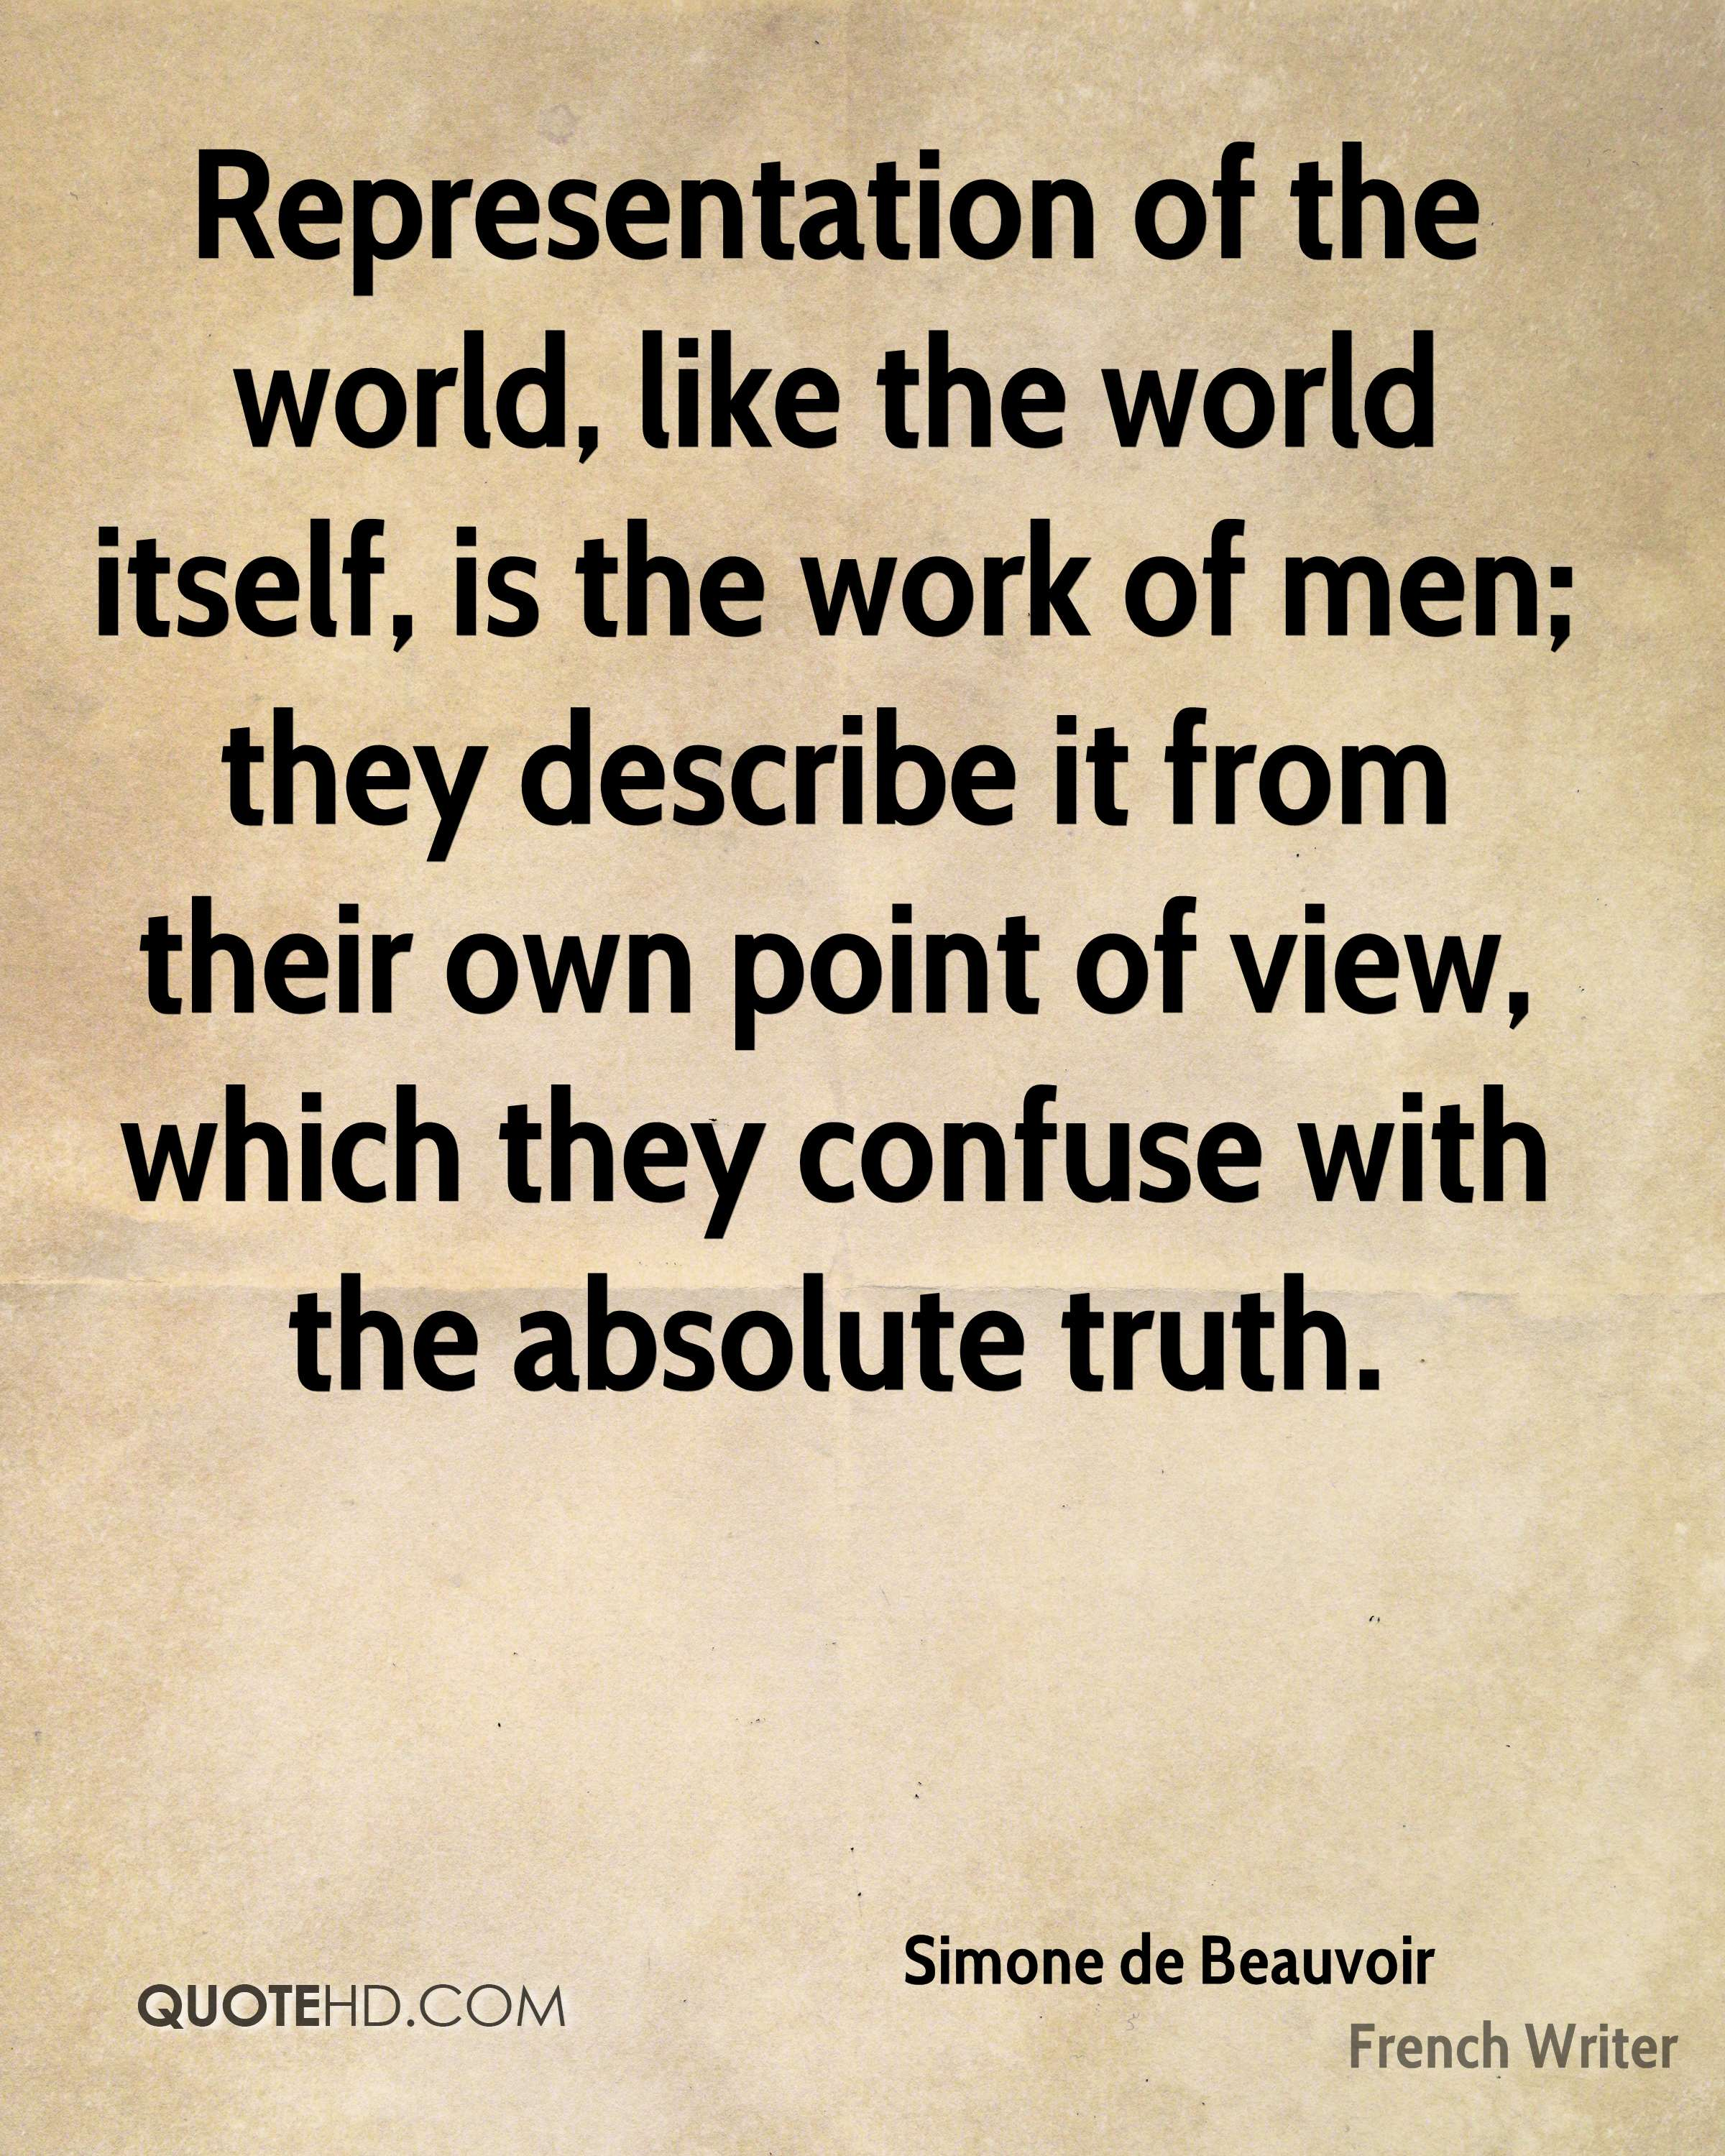 Representation of the world, like the world itself, is the work of men; they describe it from their own point of view, which they confuse with the absolute truth.